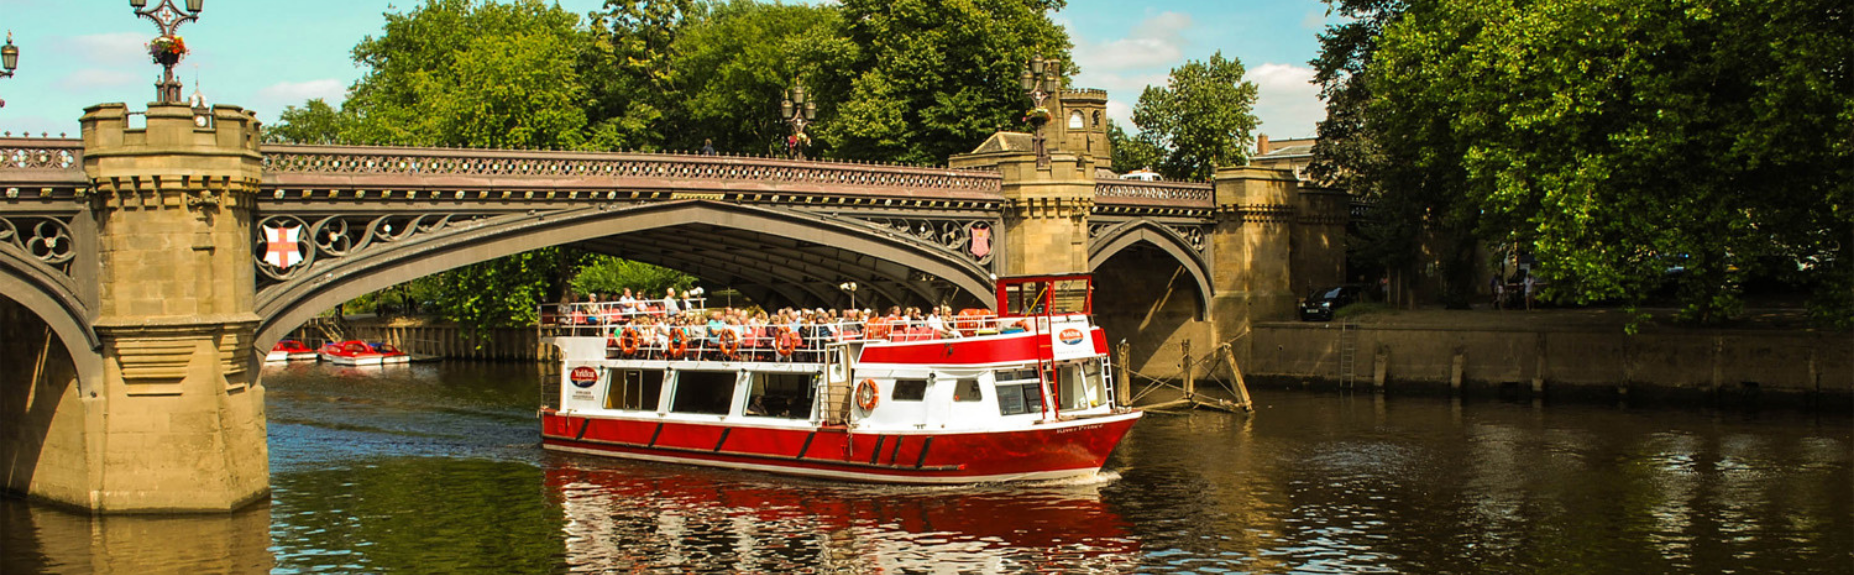 what are the best cruises in york